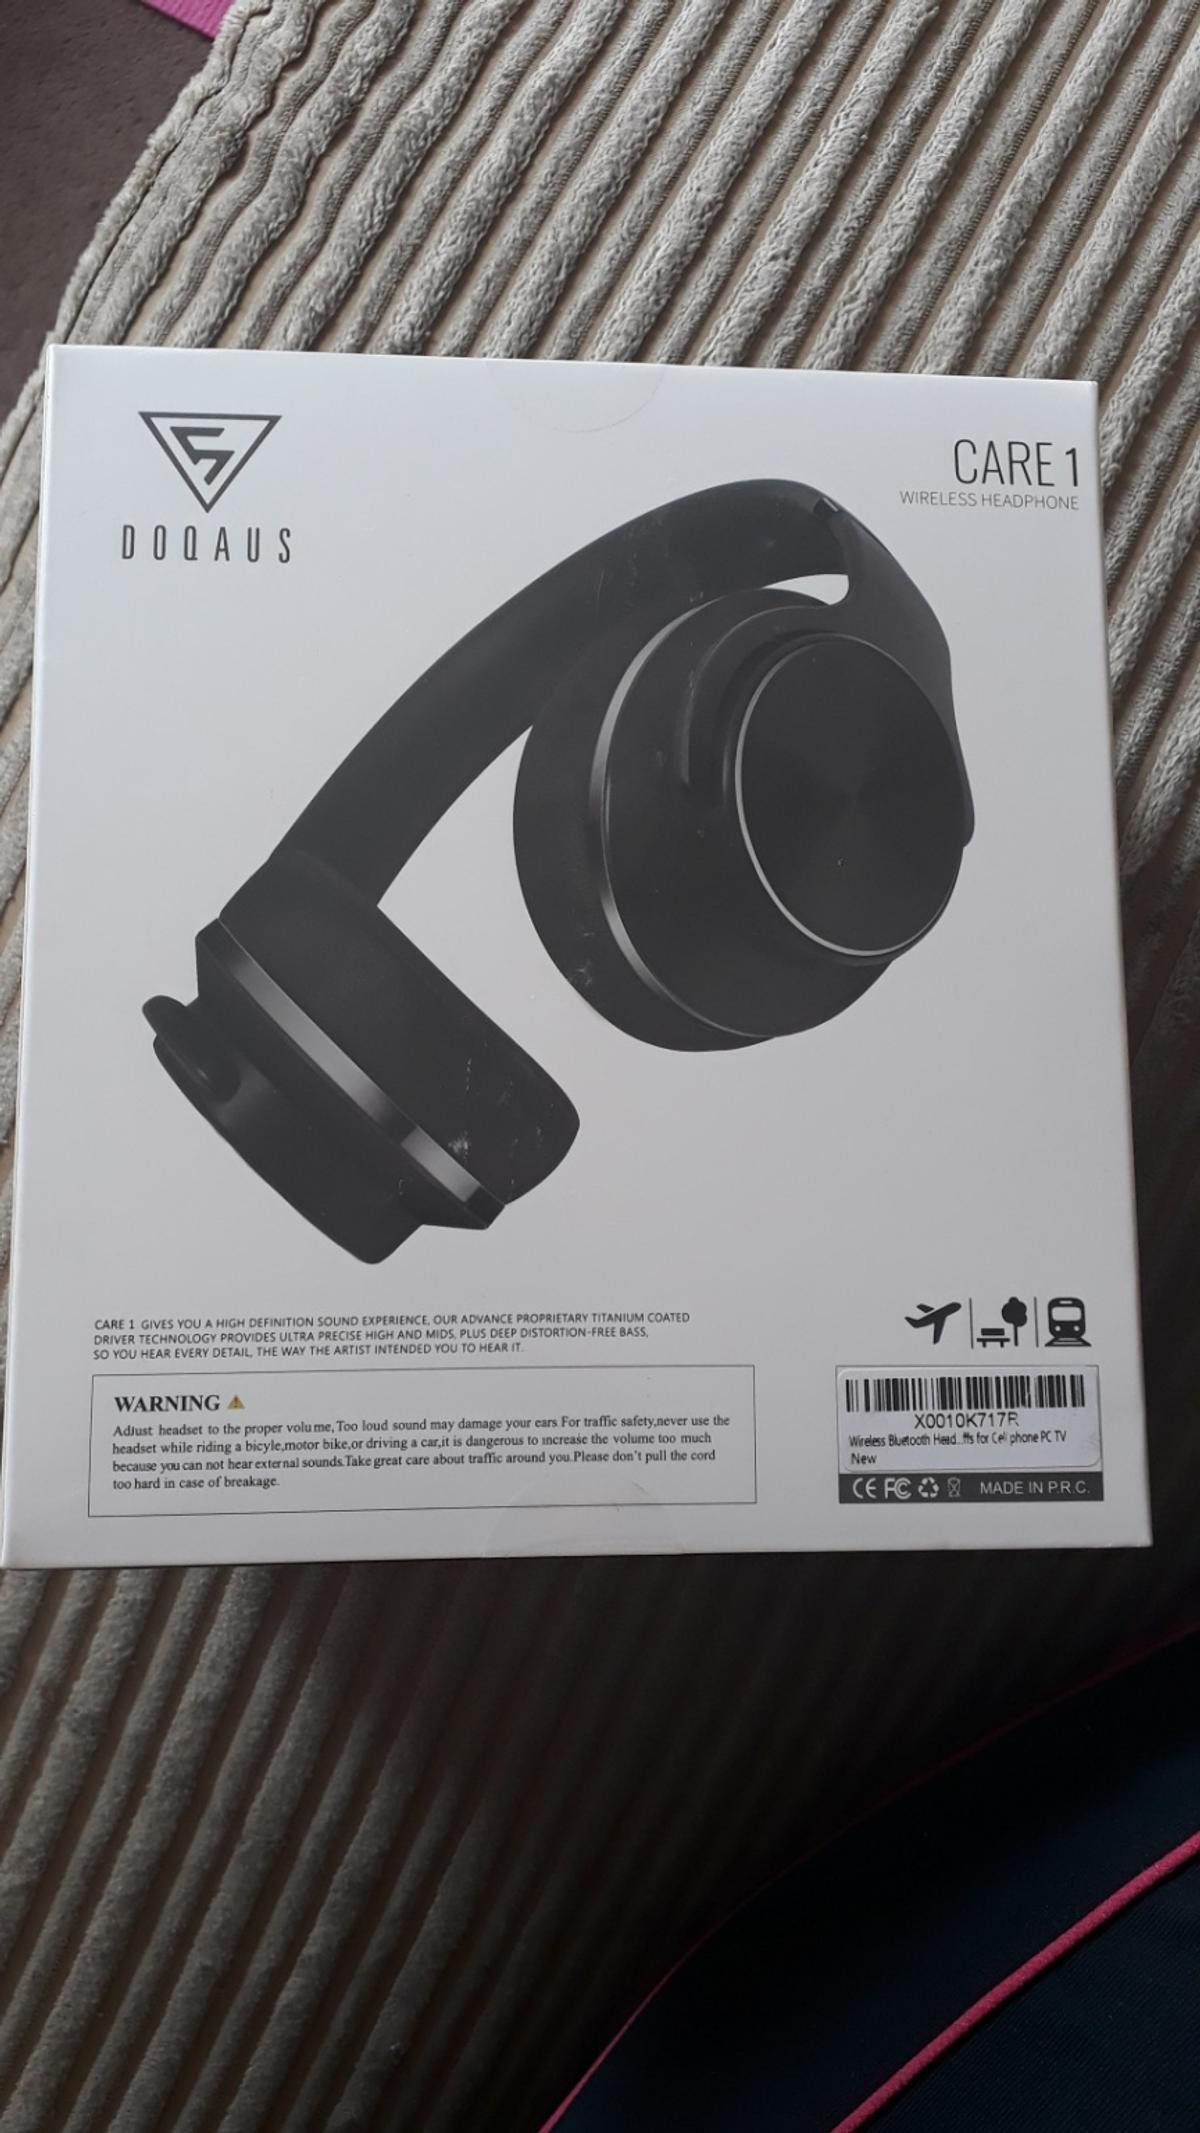 Brand new Doqaus wireless headphones